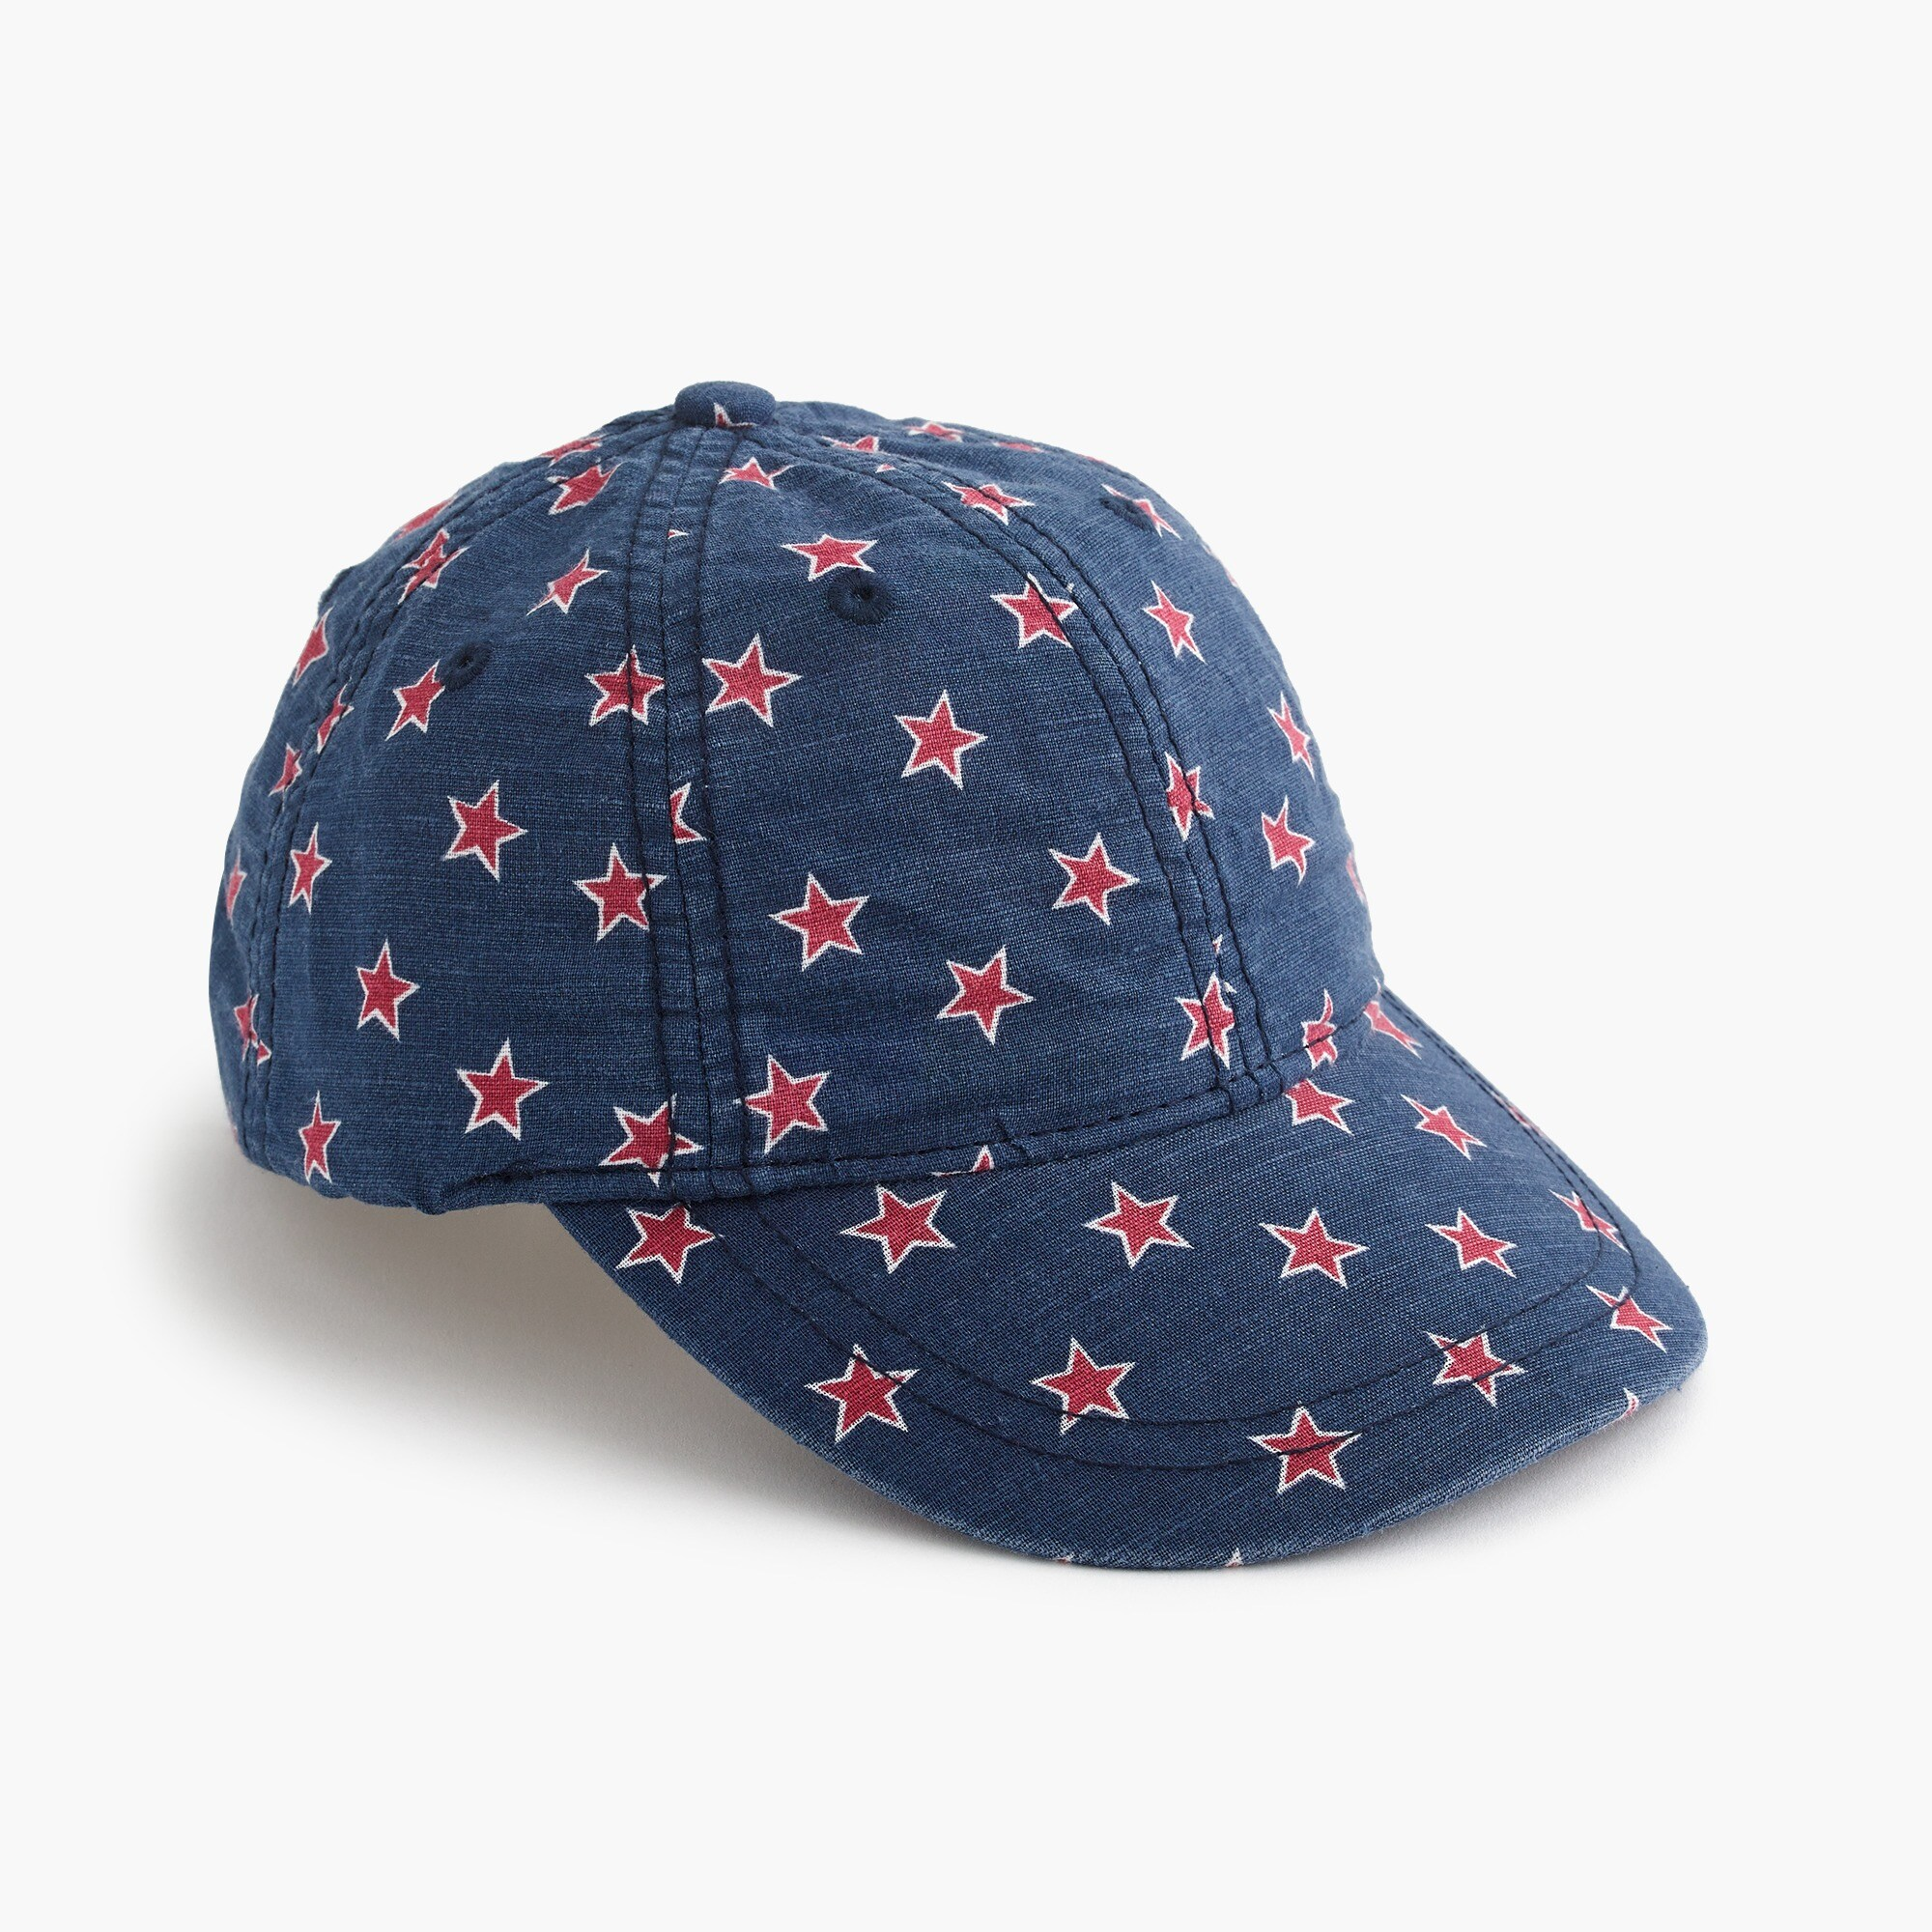 Kids' star-printed baseball cap boy accessories c